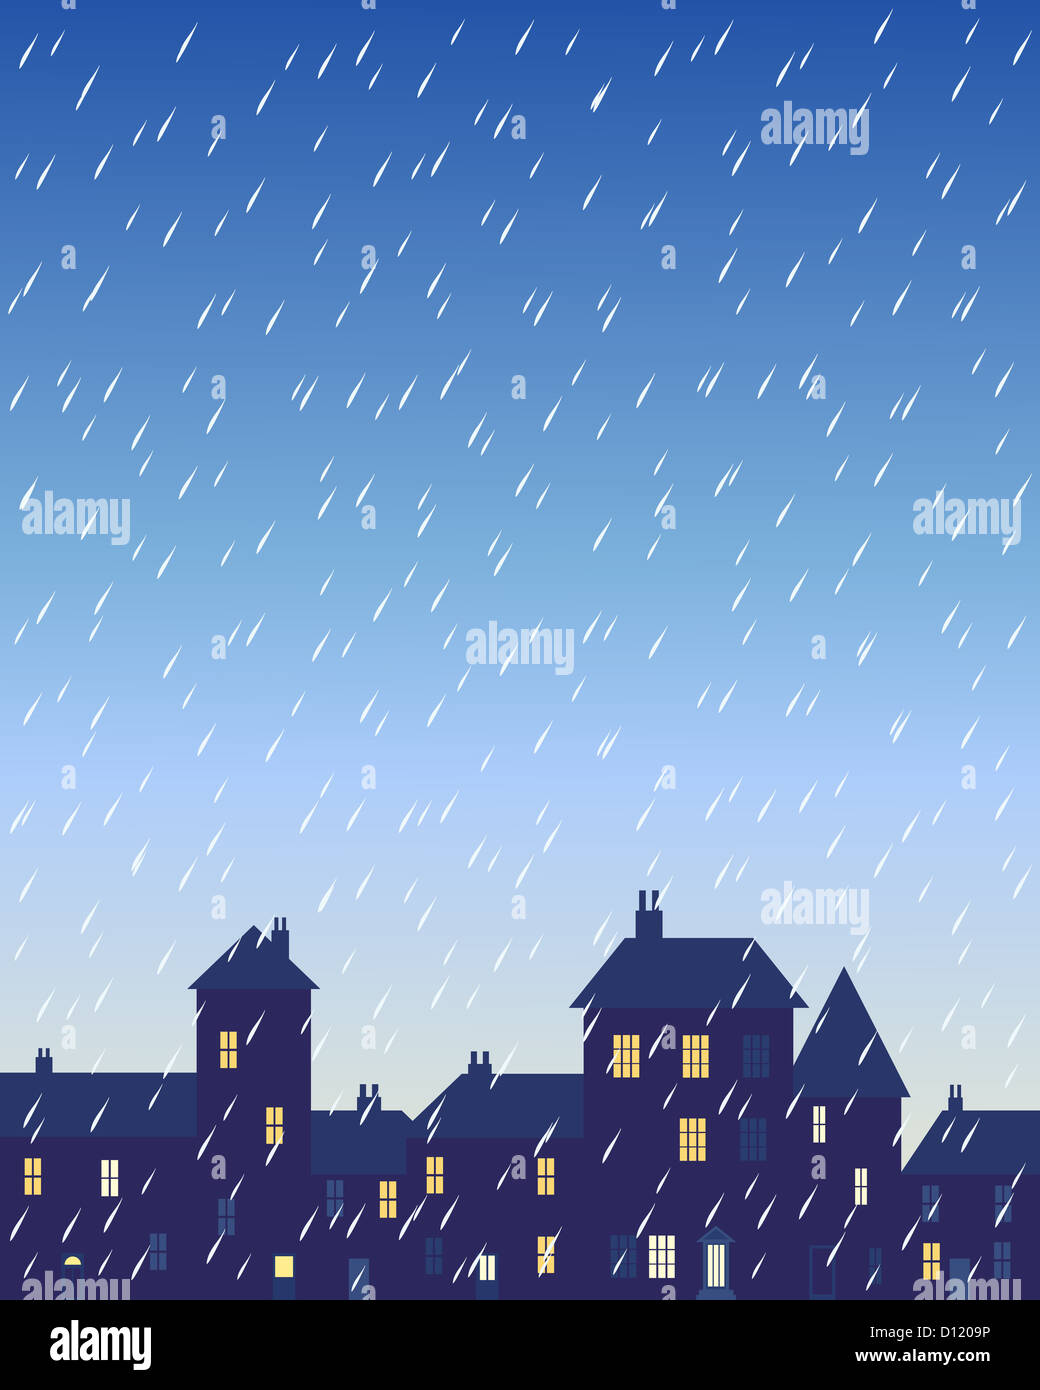 an illustration of a rainy day in a city with various shaped buildings and houses with lighted windows under a stormy Stock Photo